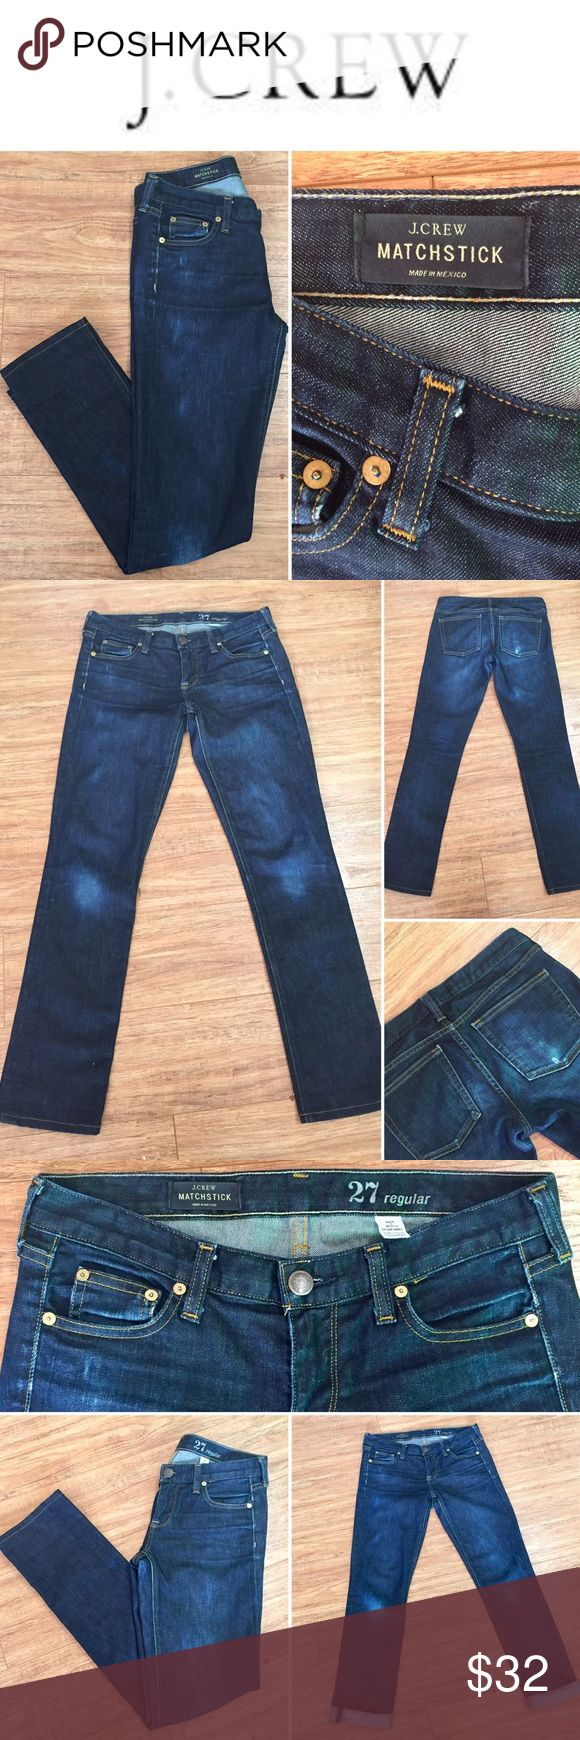 """J.crew """"Matchstick"""" Jean These are the perfect traditional straight leg jean. Gently worn and slightly distressed around the knees and back pockets. The fit and style is """"Matchstick"""", (final photo is a stock photo showing the fit in a different wash than what I'm selling.) Can be worn at the ankle or rolled for a """"boyfriend"""" look. Made with premium with stretch and classic 5 pocket style. J. Crew Jeans Straight Leg"""